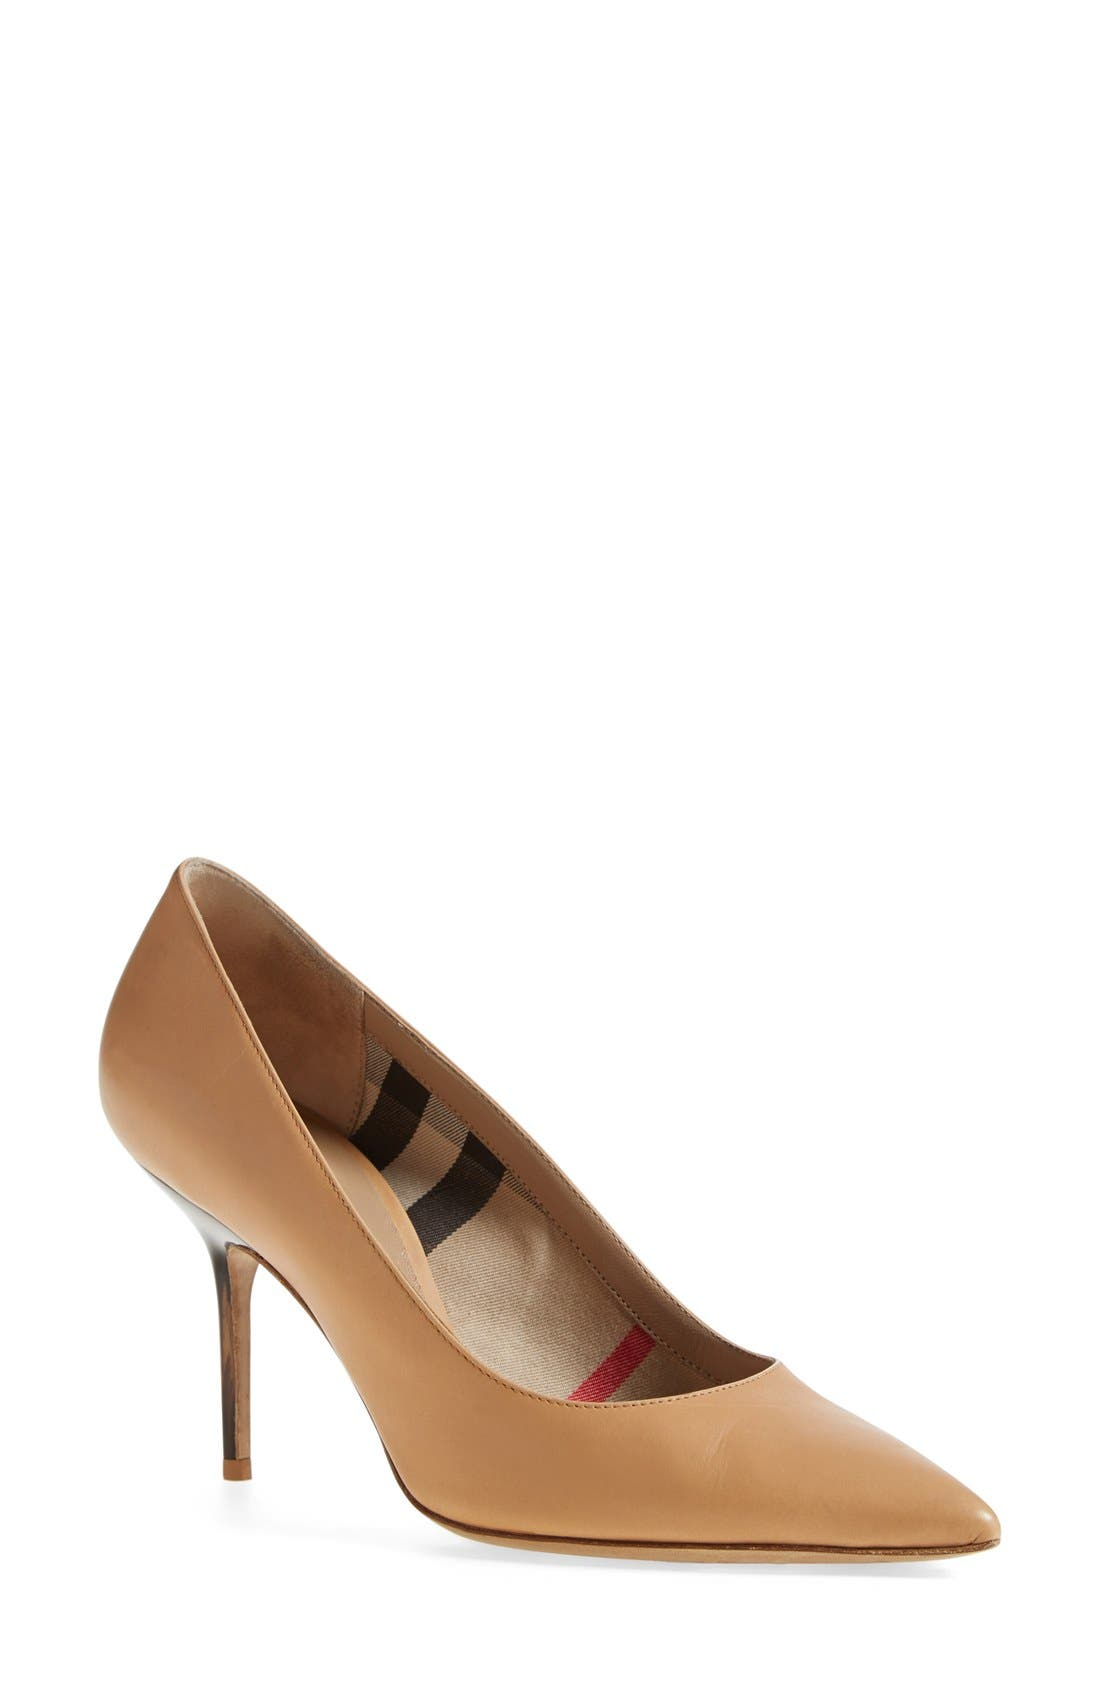 'Mawdesley' Pointy Toe Pump,                         Main,                         color, Nude